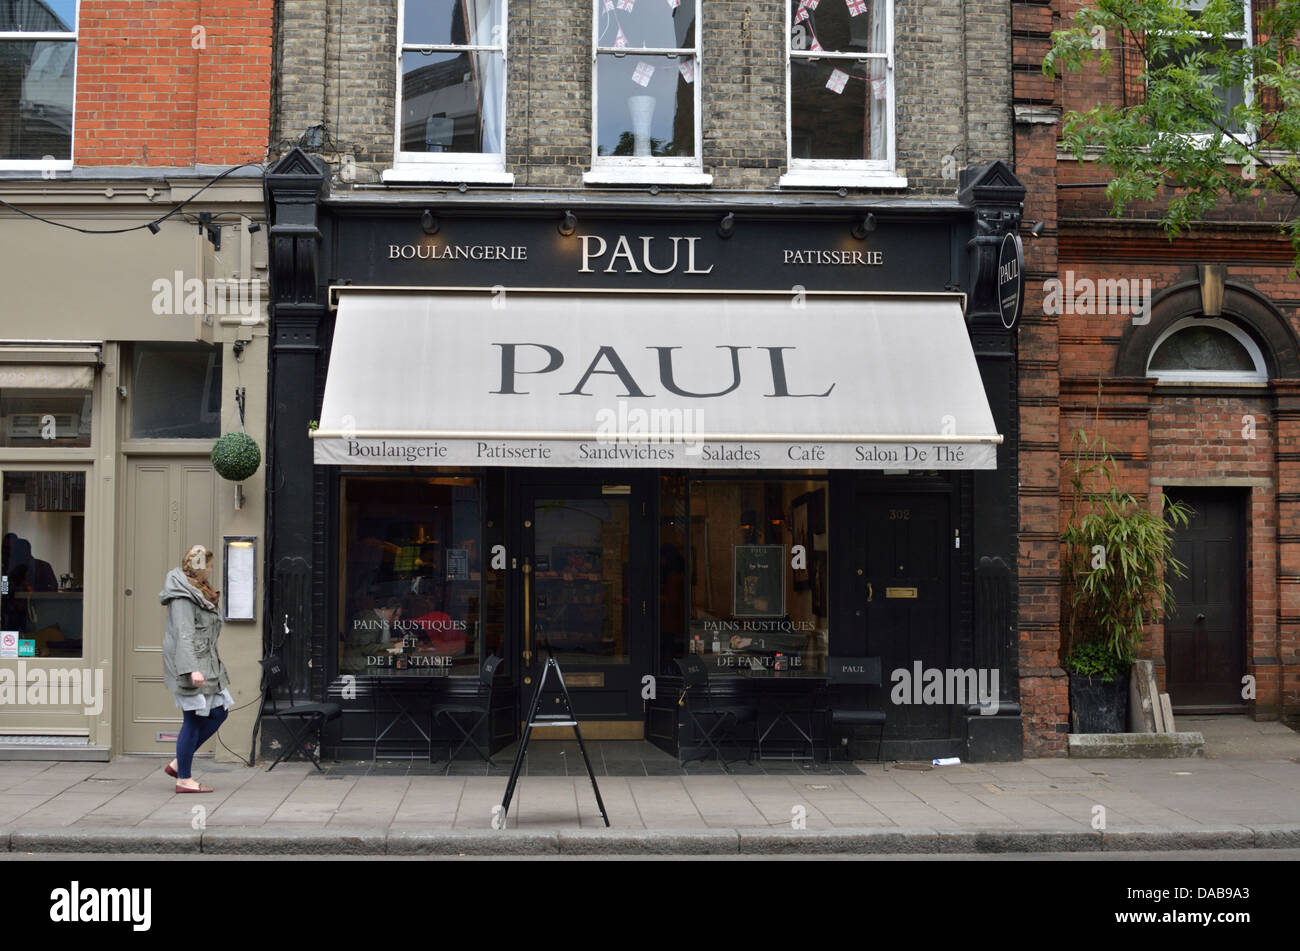 Paul bakery and cafe in Upper Street, Islington, London, UK. - Stock Image